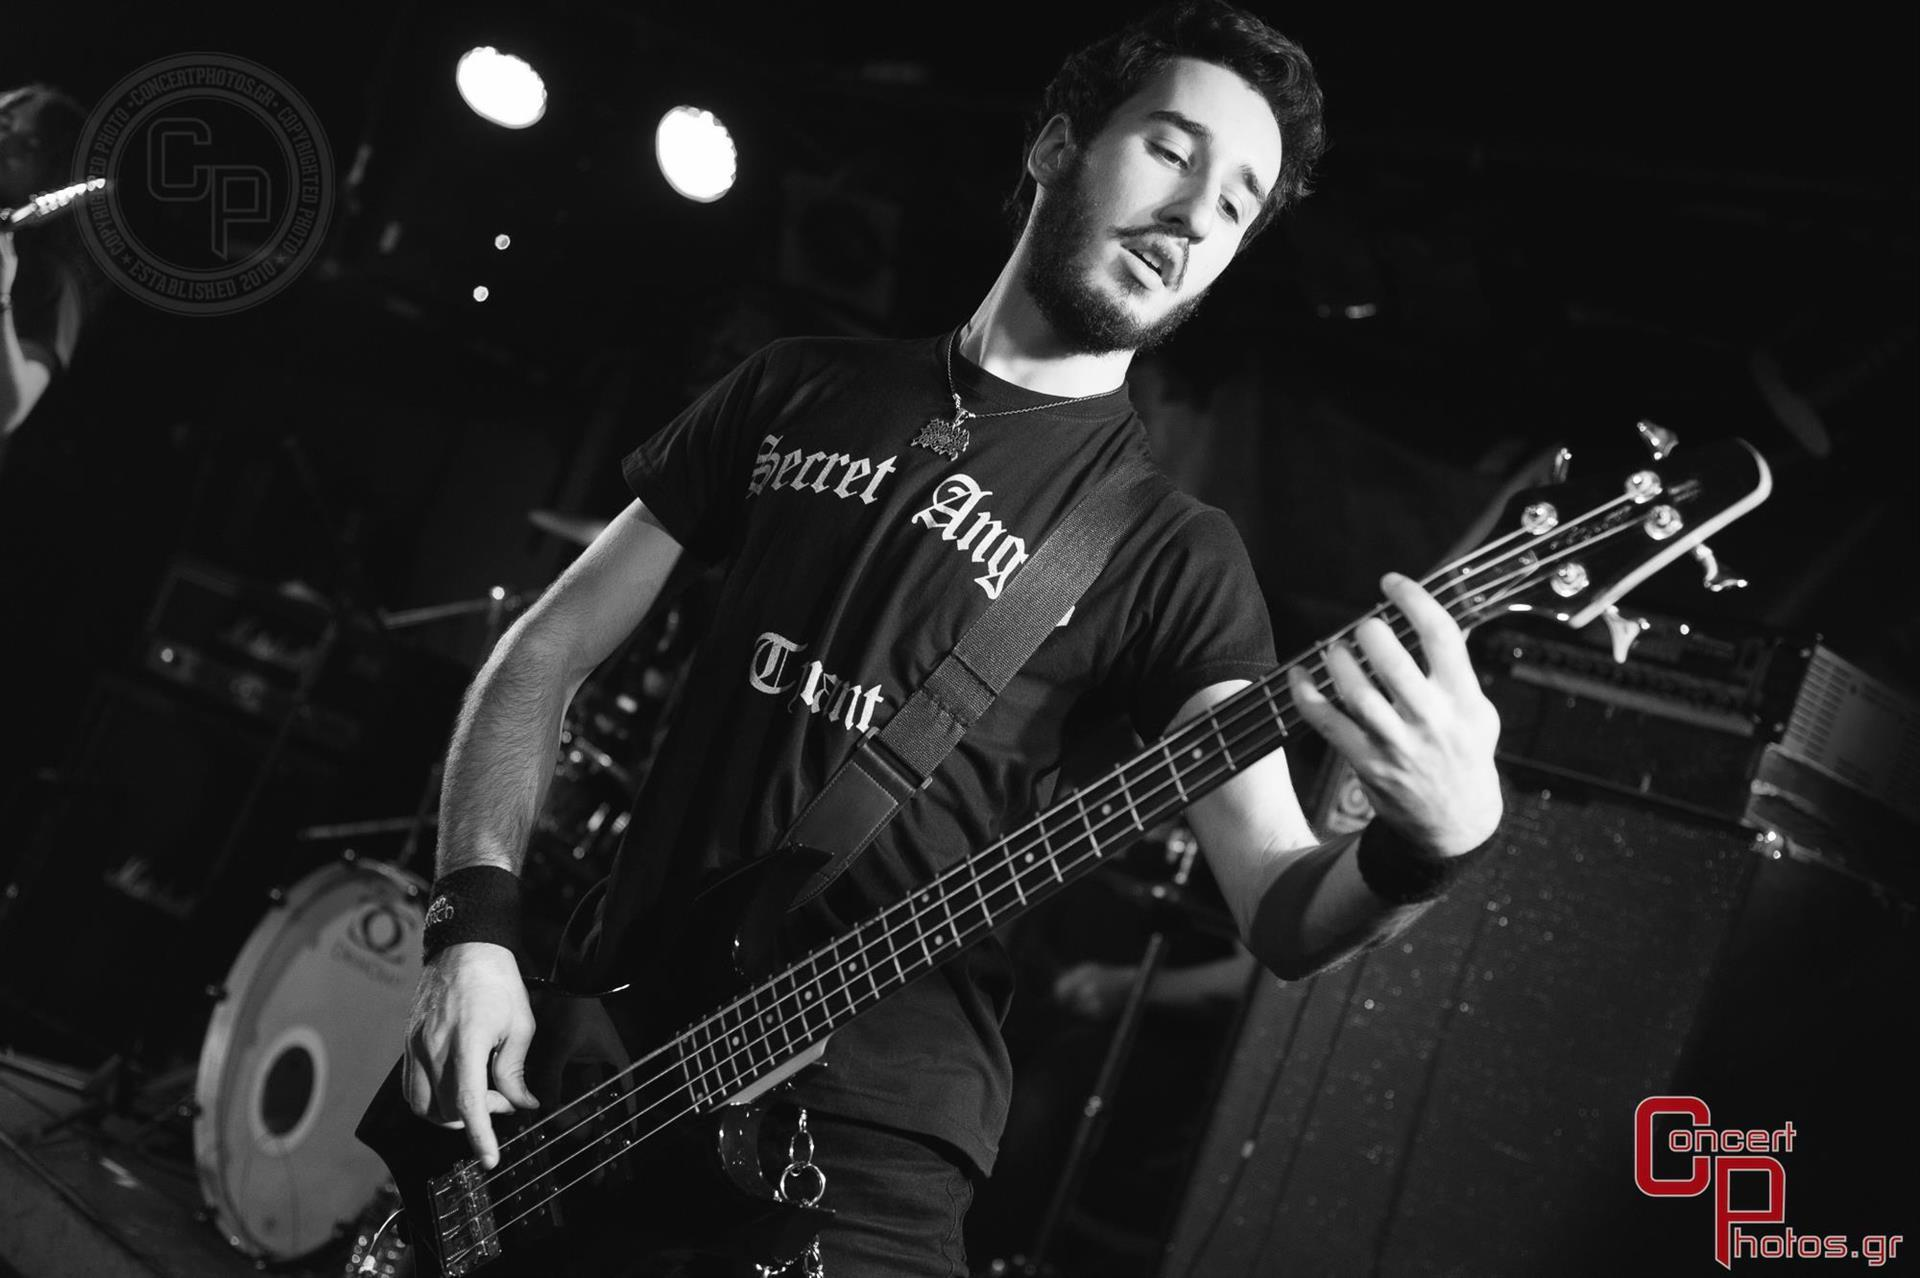 Battle Of The Bands Athens - Leg 3- photographer:  - ConcertPhotos - 20150104_2330_50